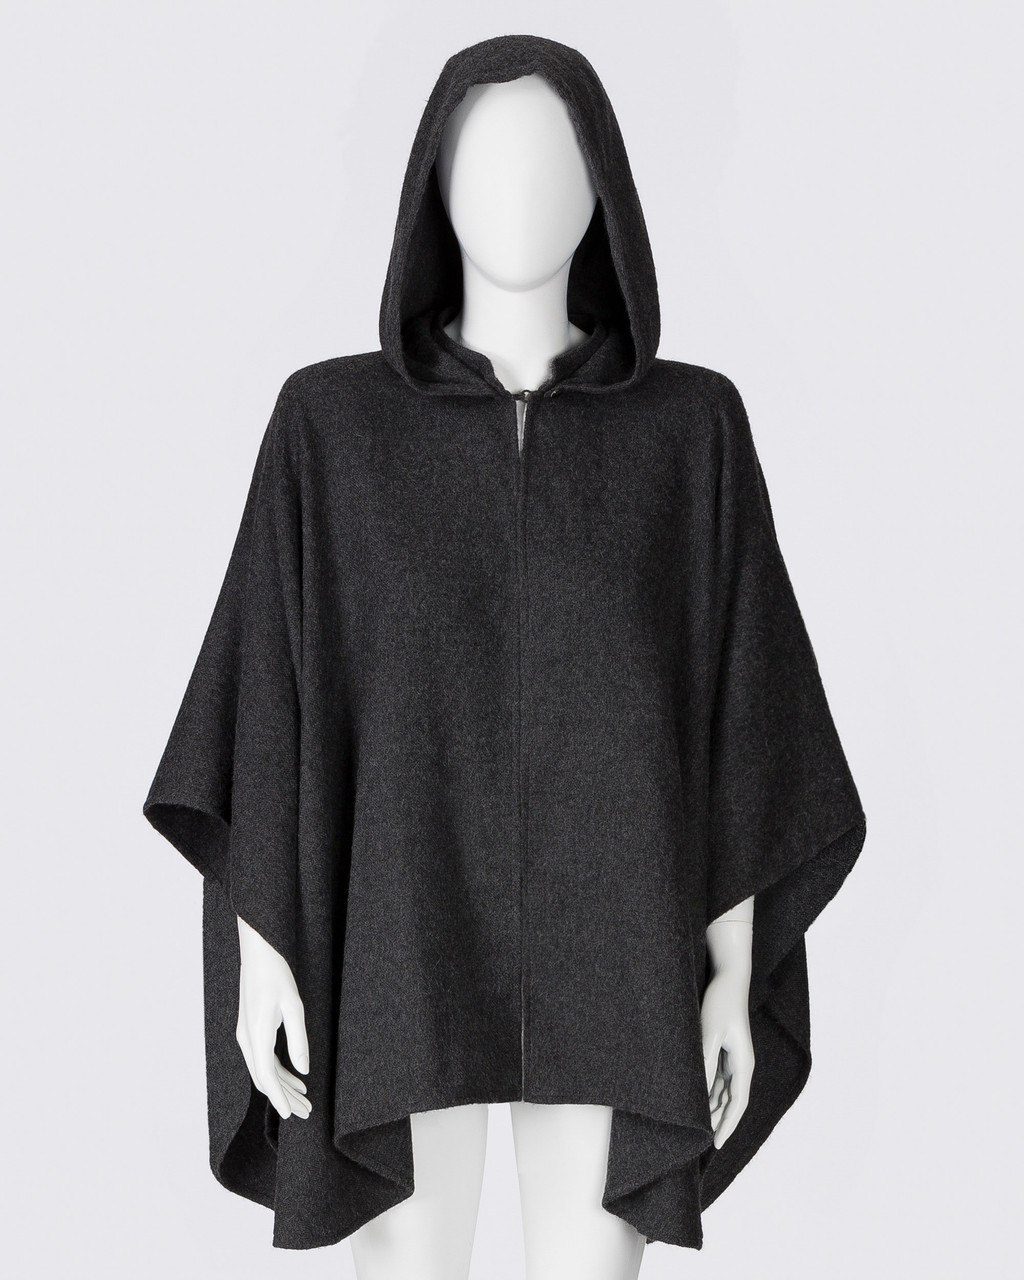 Alicia Adams Alpaca Mao Cape, alpaca poncho cape for women, alpaca poncho, alpaca clothing, alpaca cape, alpaca vs cashmere, charcoal grey alpaca cape